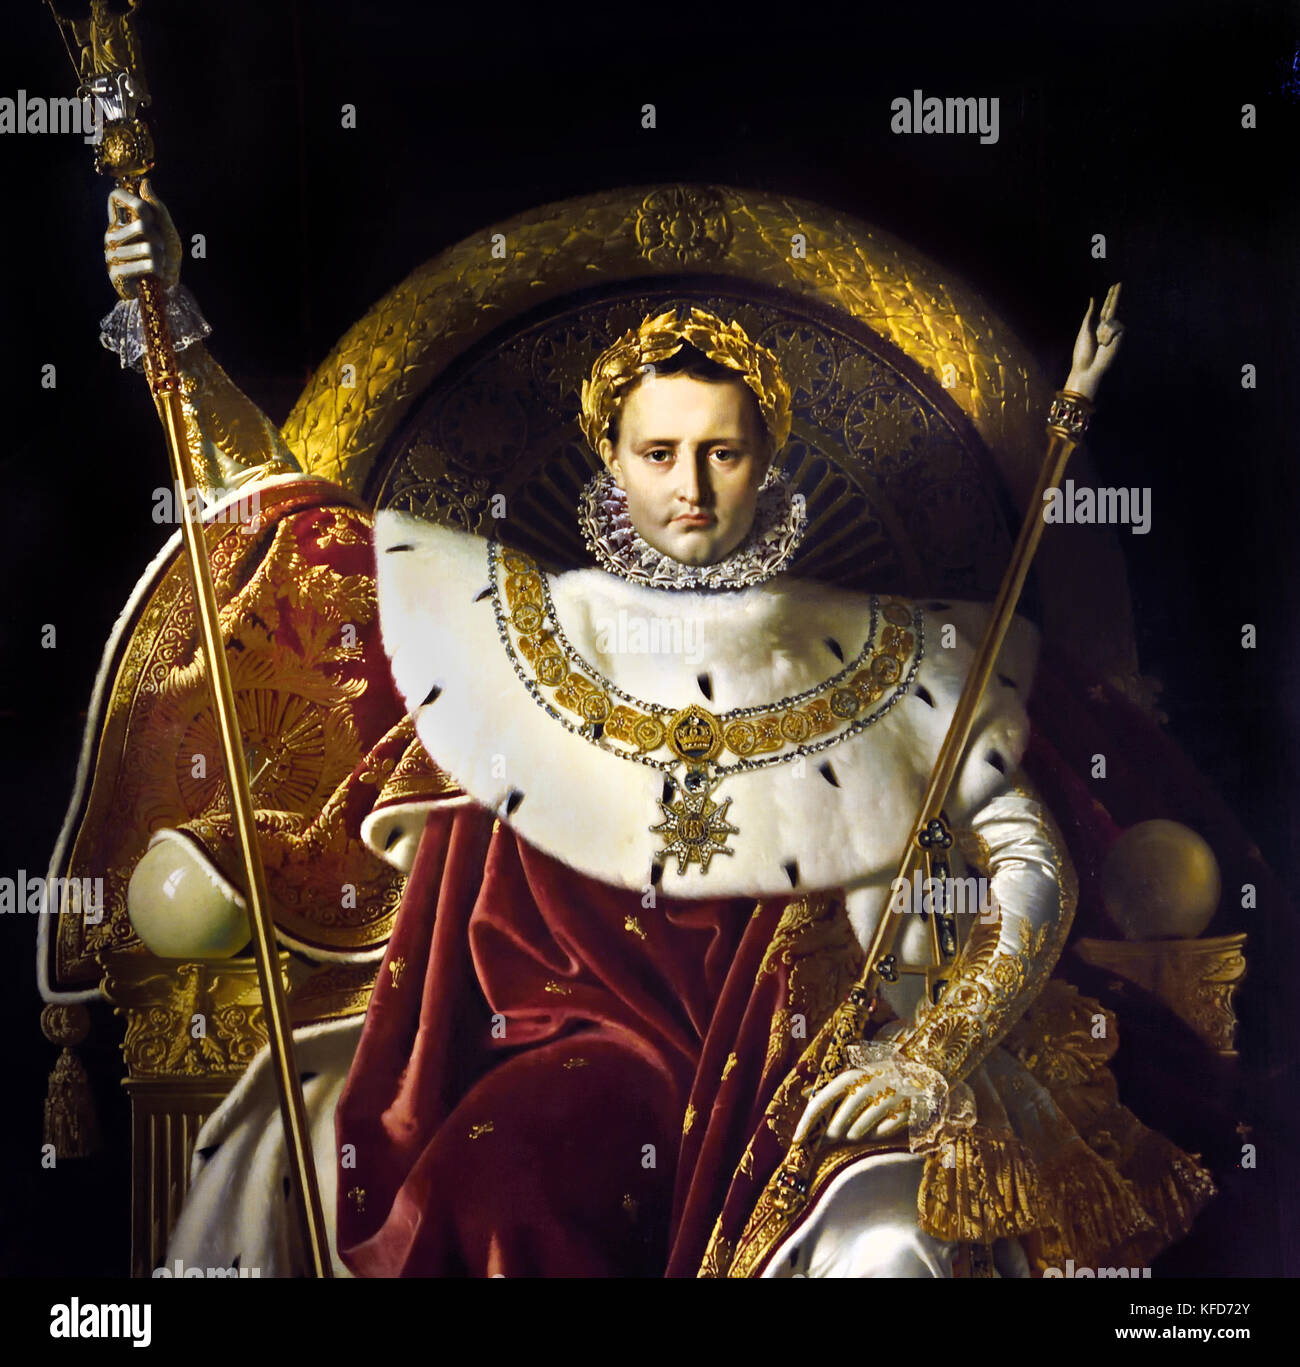 napoleon bonaparte Napoleon bonaparte he was the emperor of the french and also the king of italy as napoleon ihis actions shaped european politics in the early 19th century.